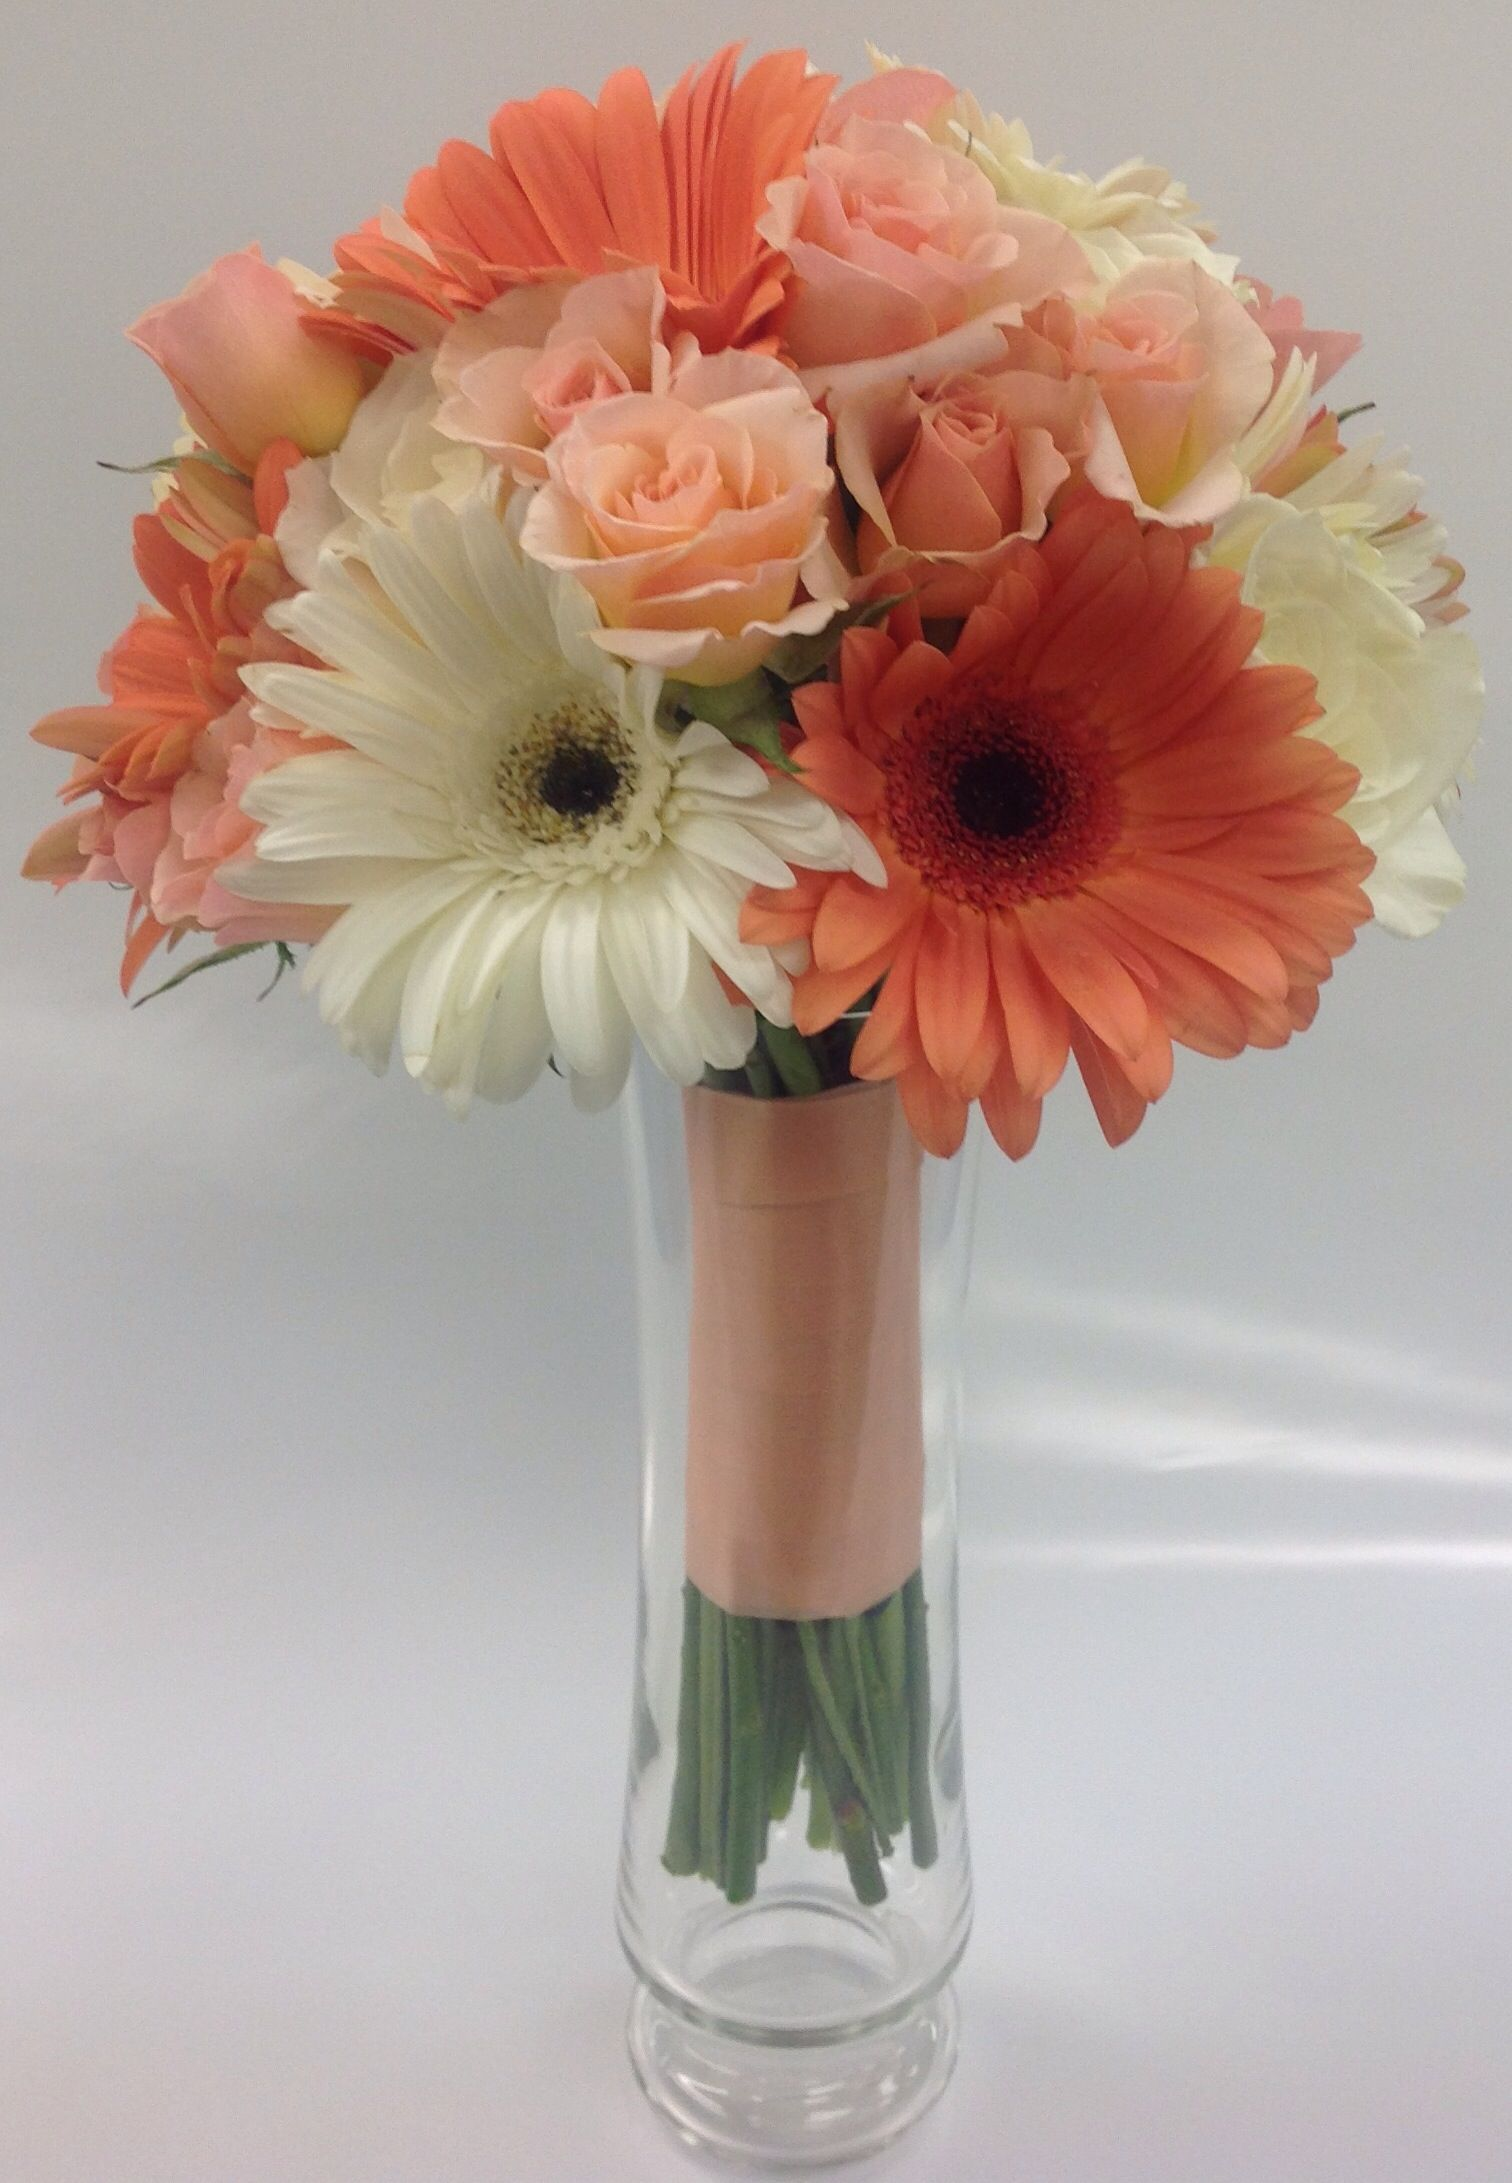 Coral And Peach Bridesmaid Bouquet With Gerbera Daisies Roses And